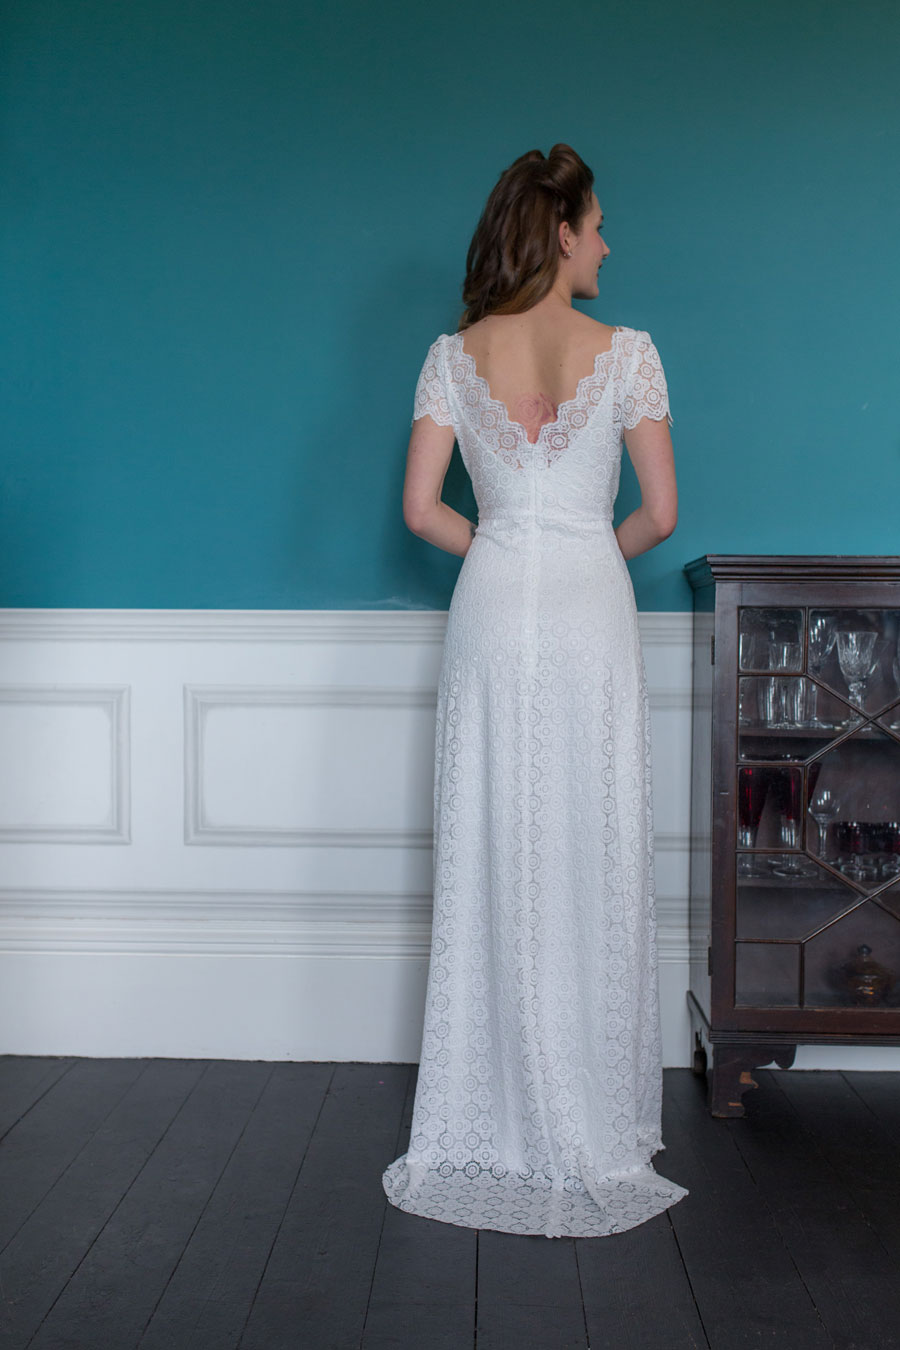 Quirky Wedding Dresses For Non-Traditional Brides- Lucy Can't Dance0036